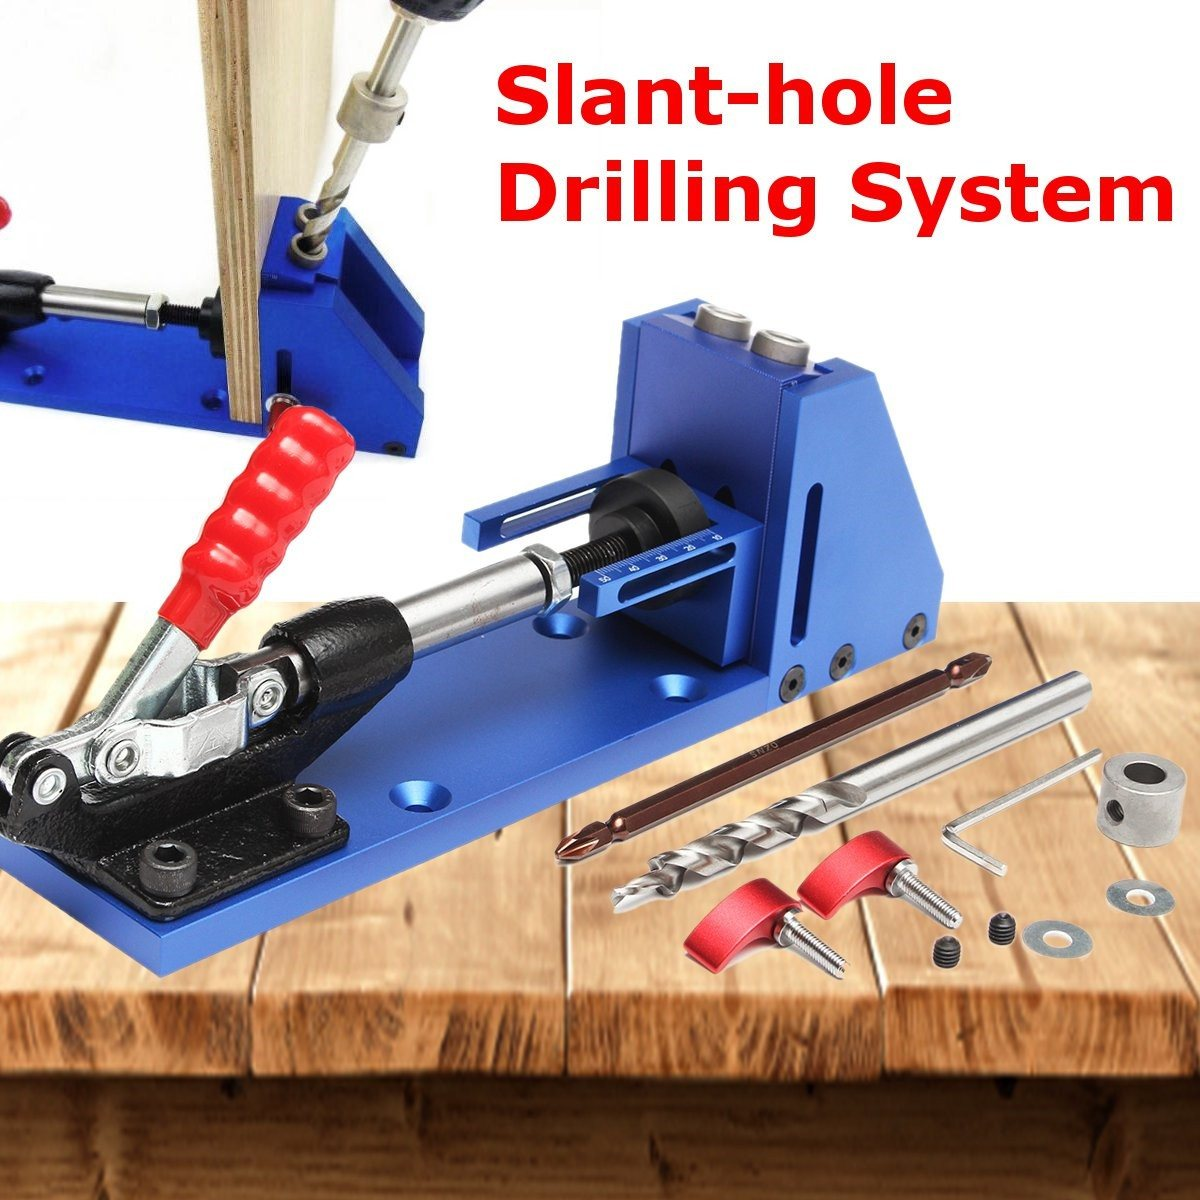 Oblique Pro-Pocket Hole Jig Drill Guide Joinery Woodworking Tool Kit + Drilling Bit Wood For Kreg lant-hole Drilling System